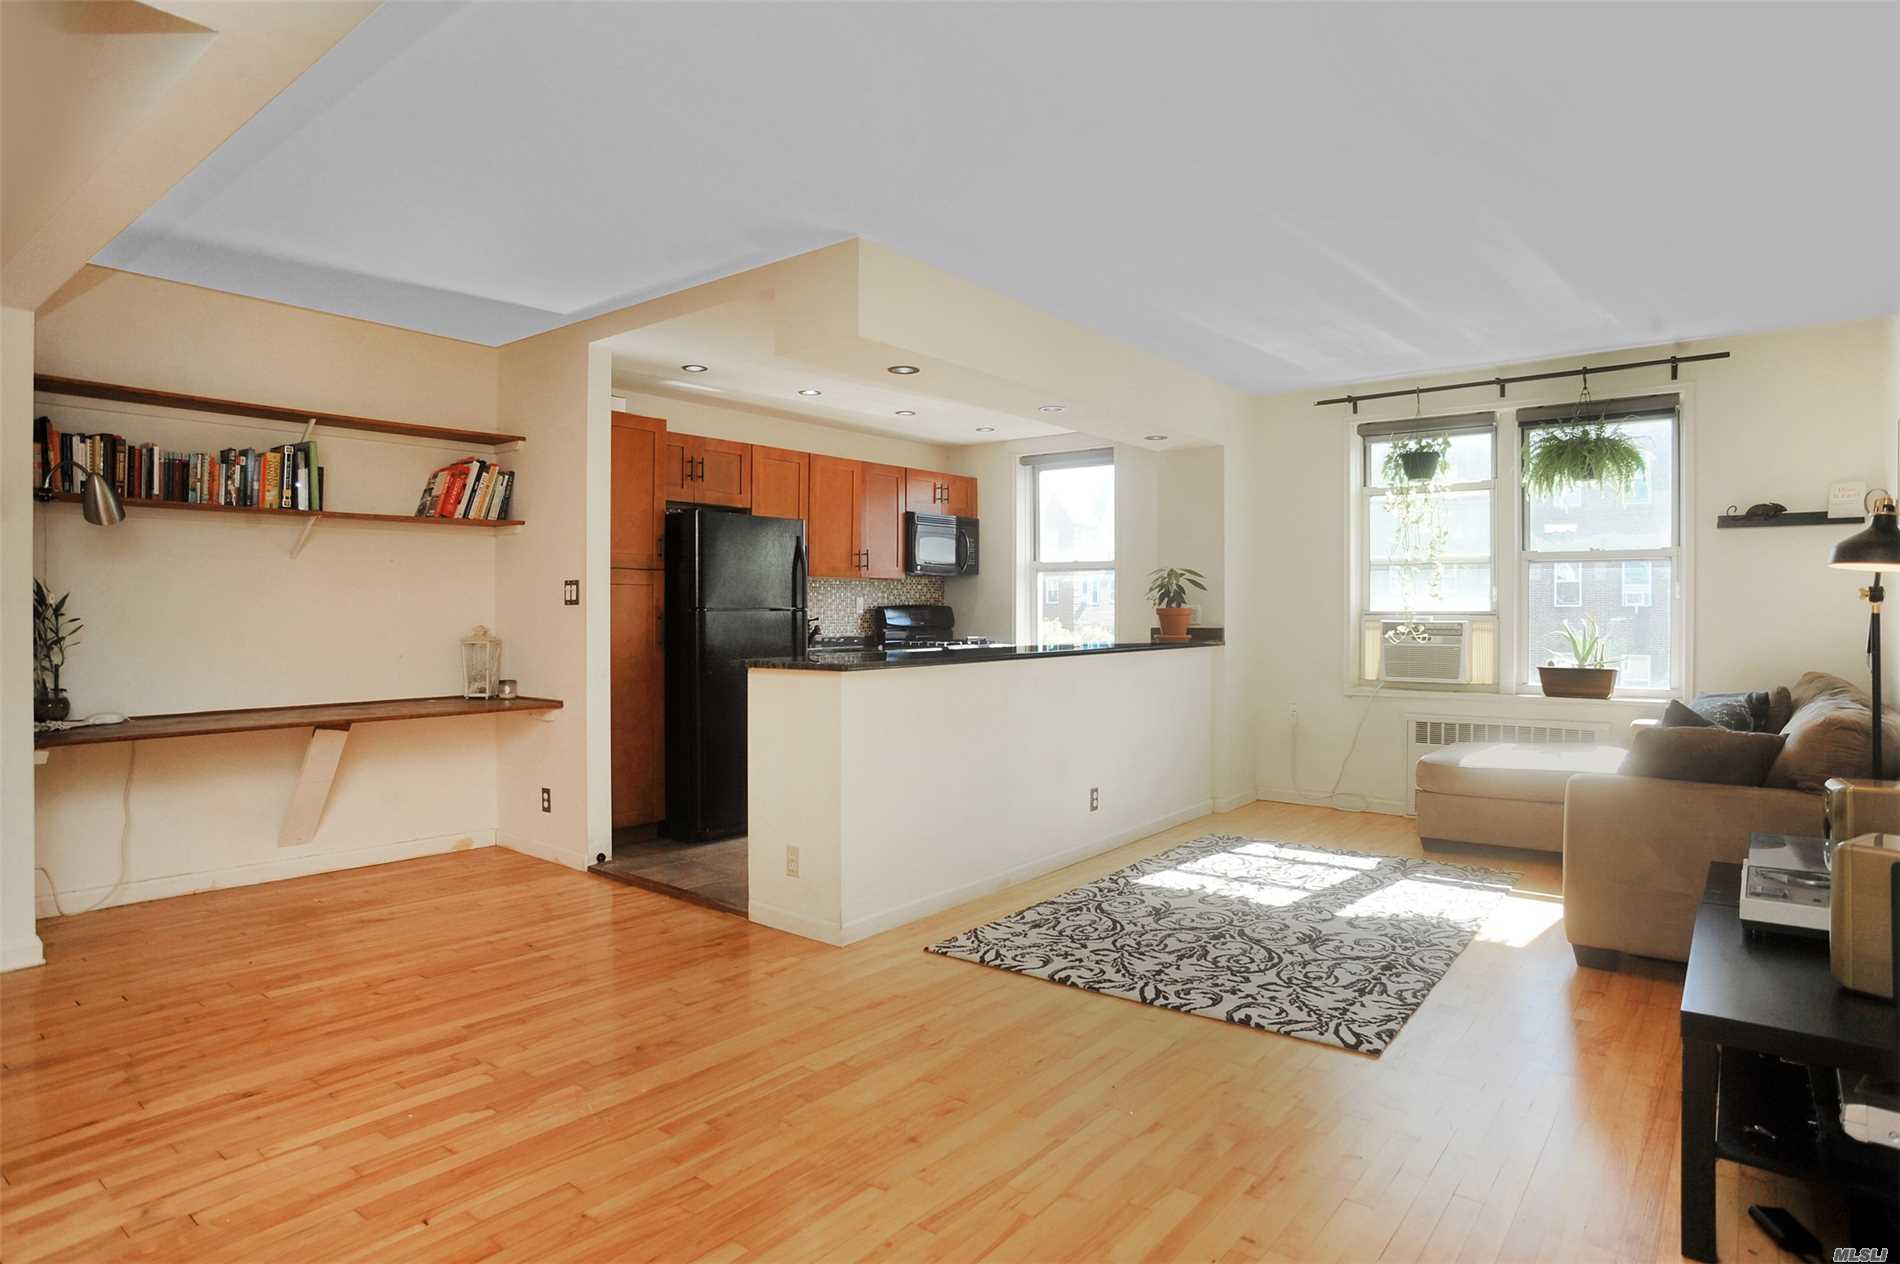 Gorgeous Open Plan, South Facing Condo With Green Granite, Windowed Kitchen With Wood/Mdf Newer Cabinetry And Recessed Lighting. Hardwood Flooring, Older But Clean Bathroom, And Corner Bedroom Facing Both South And West. Tax Abatement = 2360/Yr Annual Taxes. Allows Pets. Laundry In The Basement. Waiting List For Indoor Parking Garage With $95 Monthly Fee. Bus On 82nd (Local/Express) And 10 Blocks To 7/E/R/M, Ir 2.5 Blocks To 7 At 82nd Street.